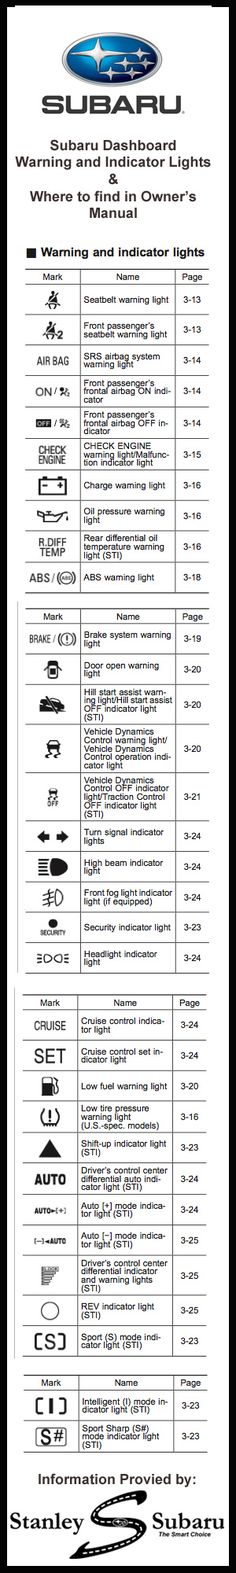 Subaru Dash Lights : subaru, lights, Subaru, Dashboard, Symbols, Supercars, Gallery